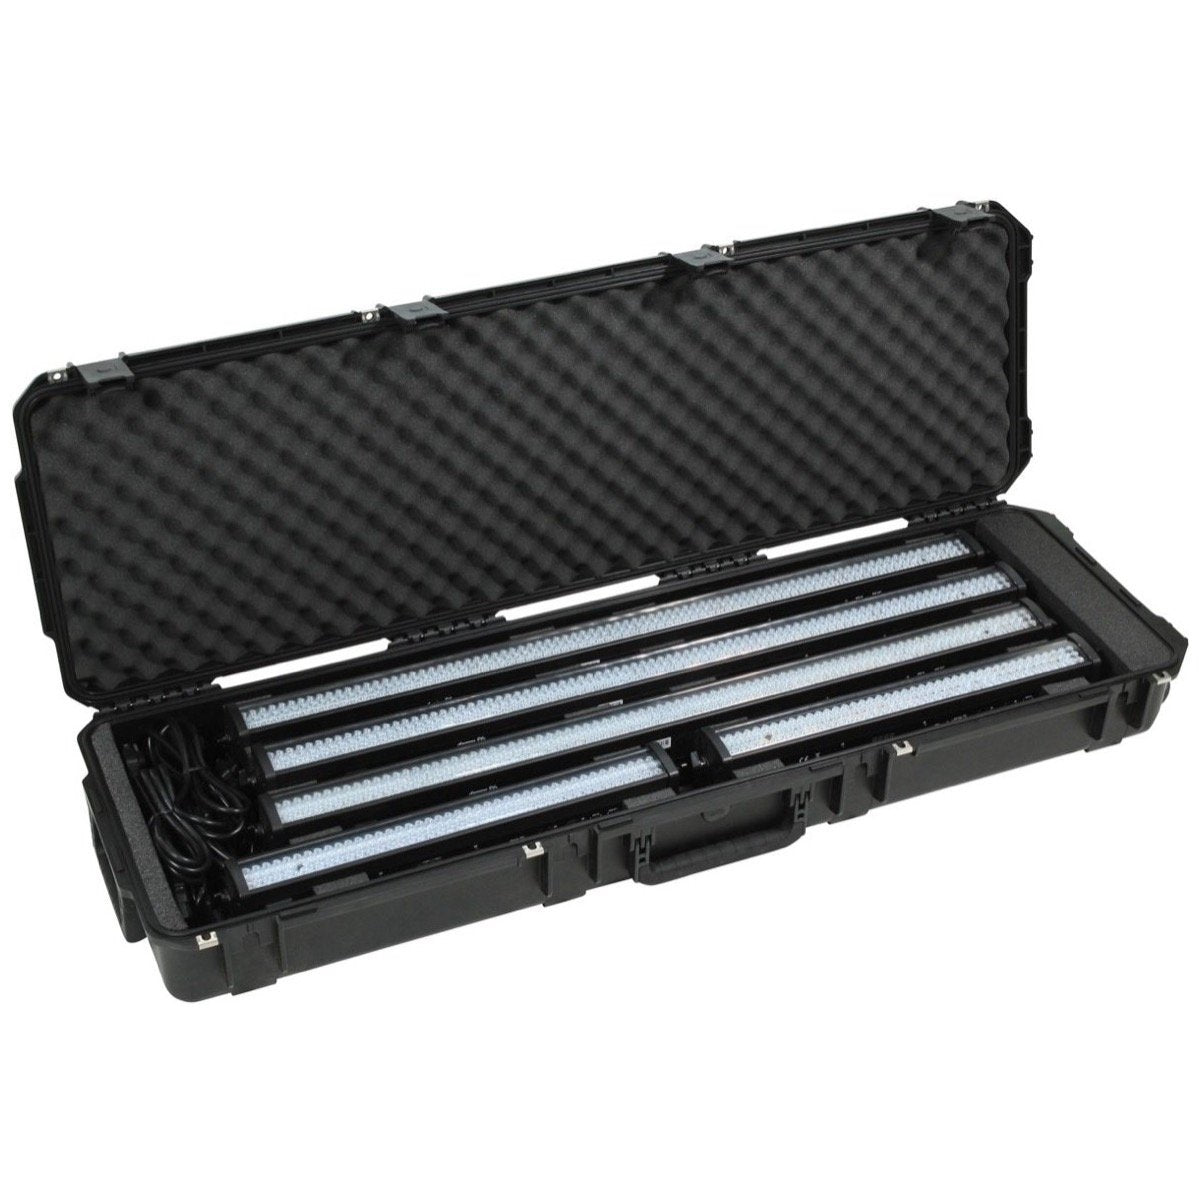 SKB 3i-5014-LBAR iSeries LED Light Bar Case